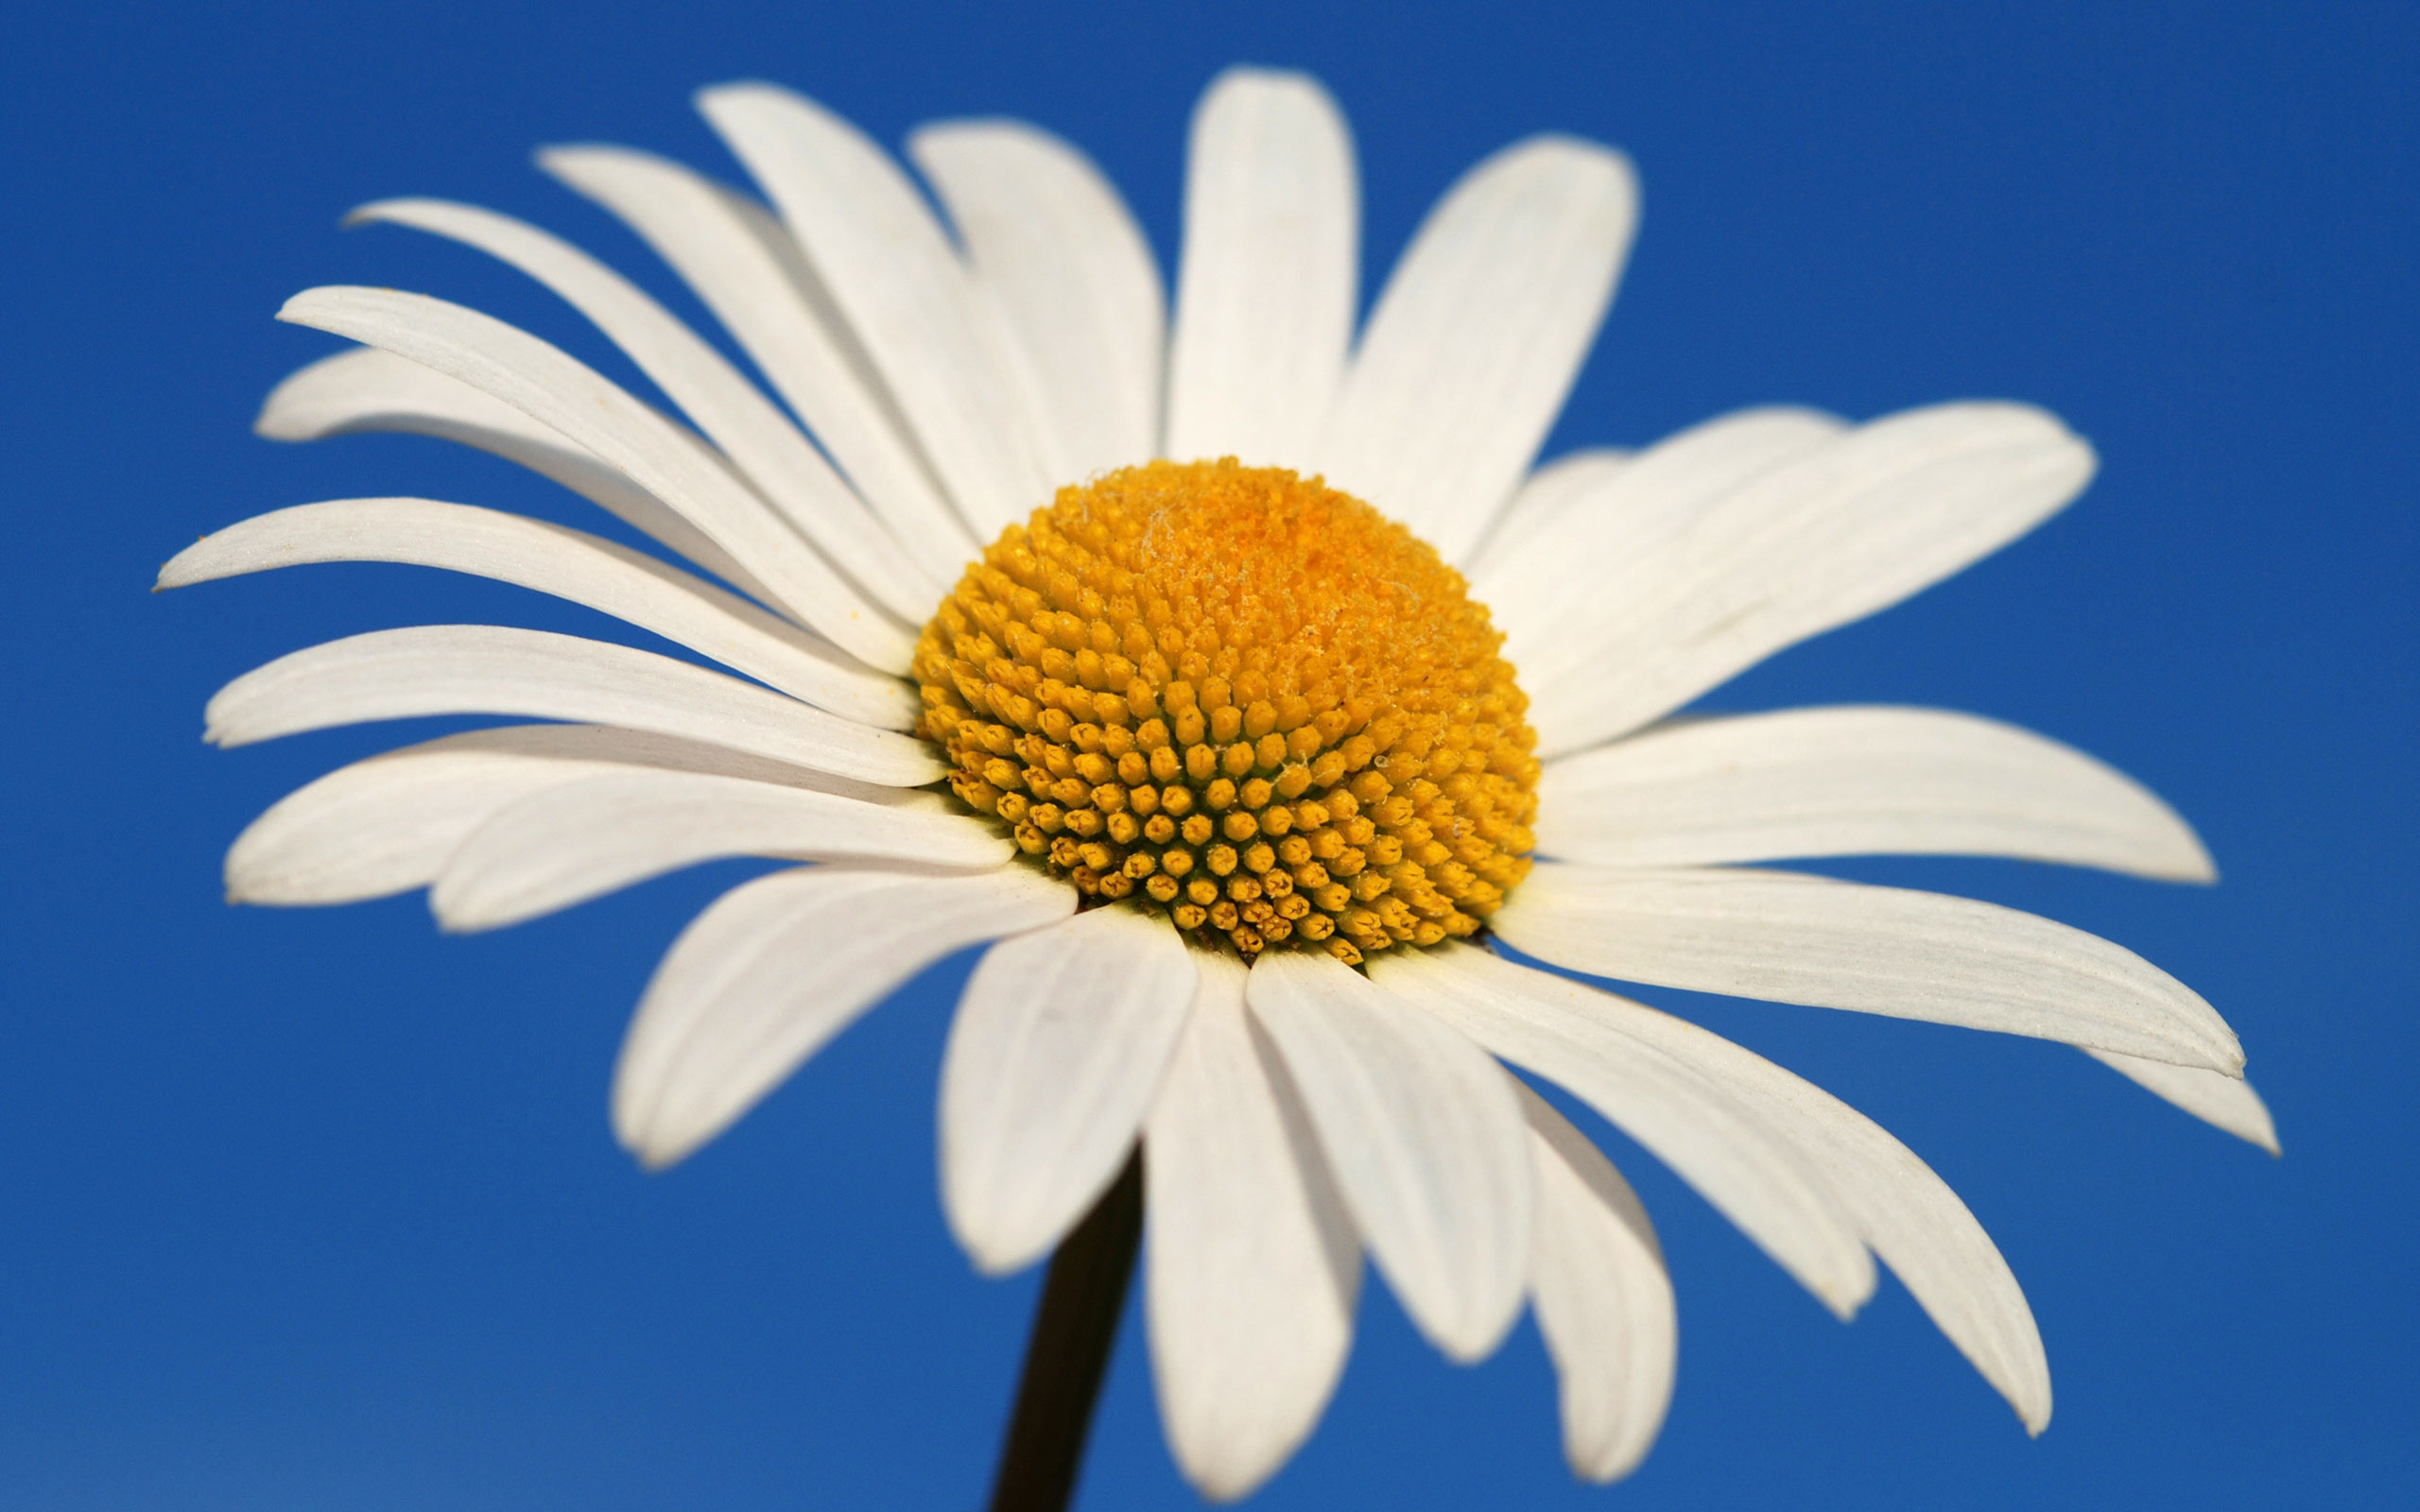 HD Wallpapers Glowing White Daisy